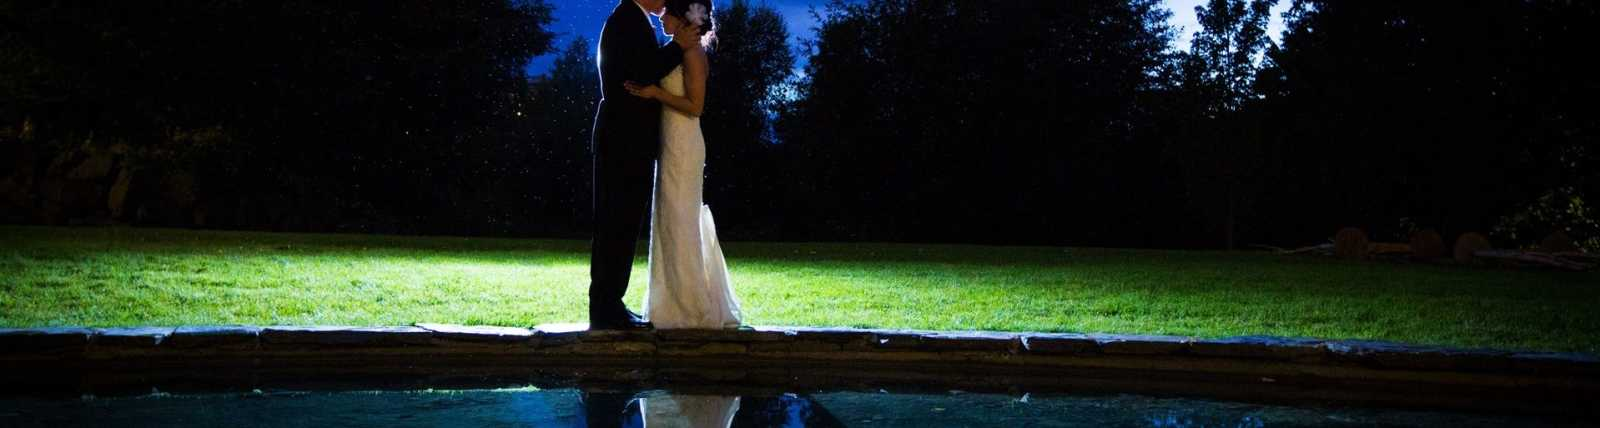 Moonlit Wedding